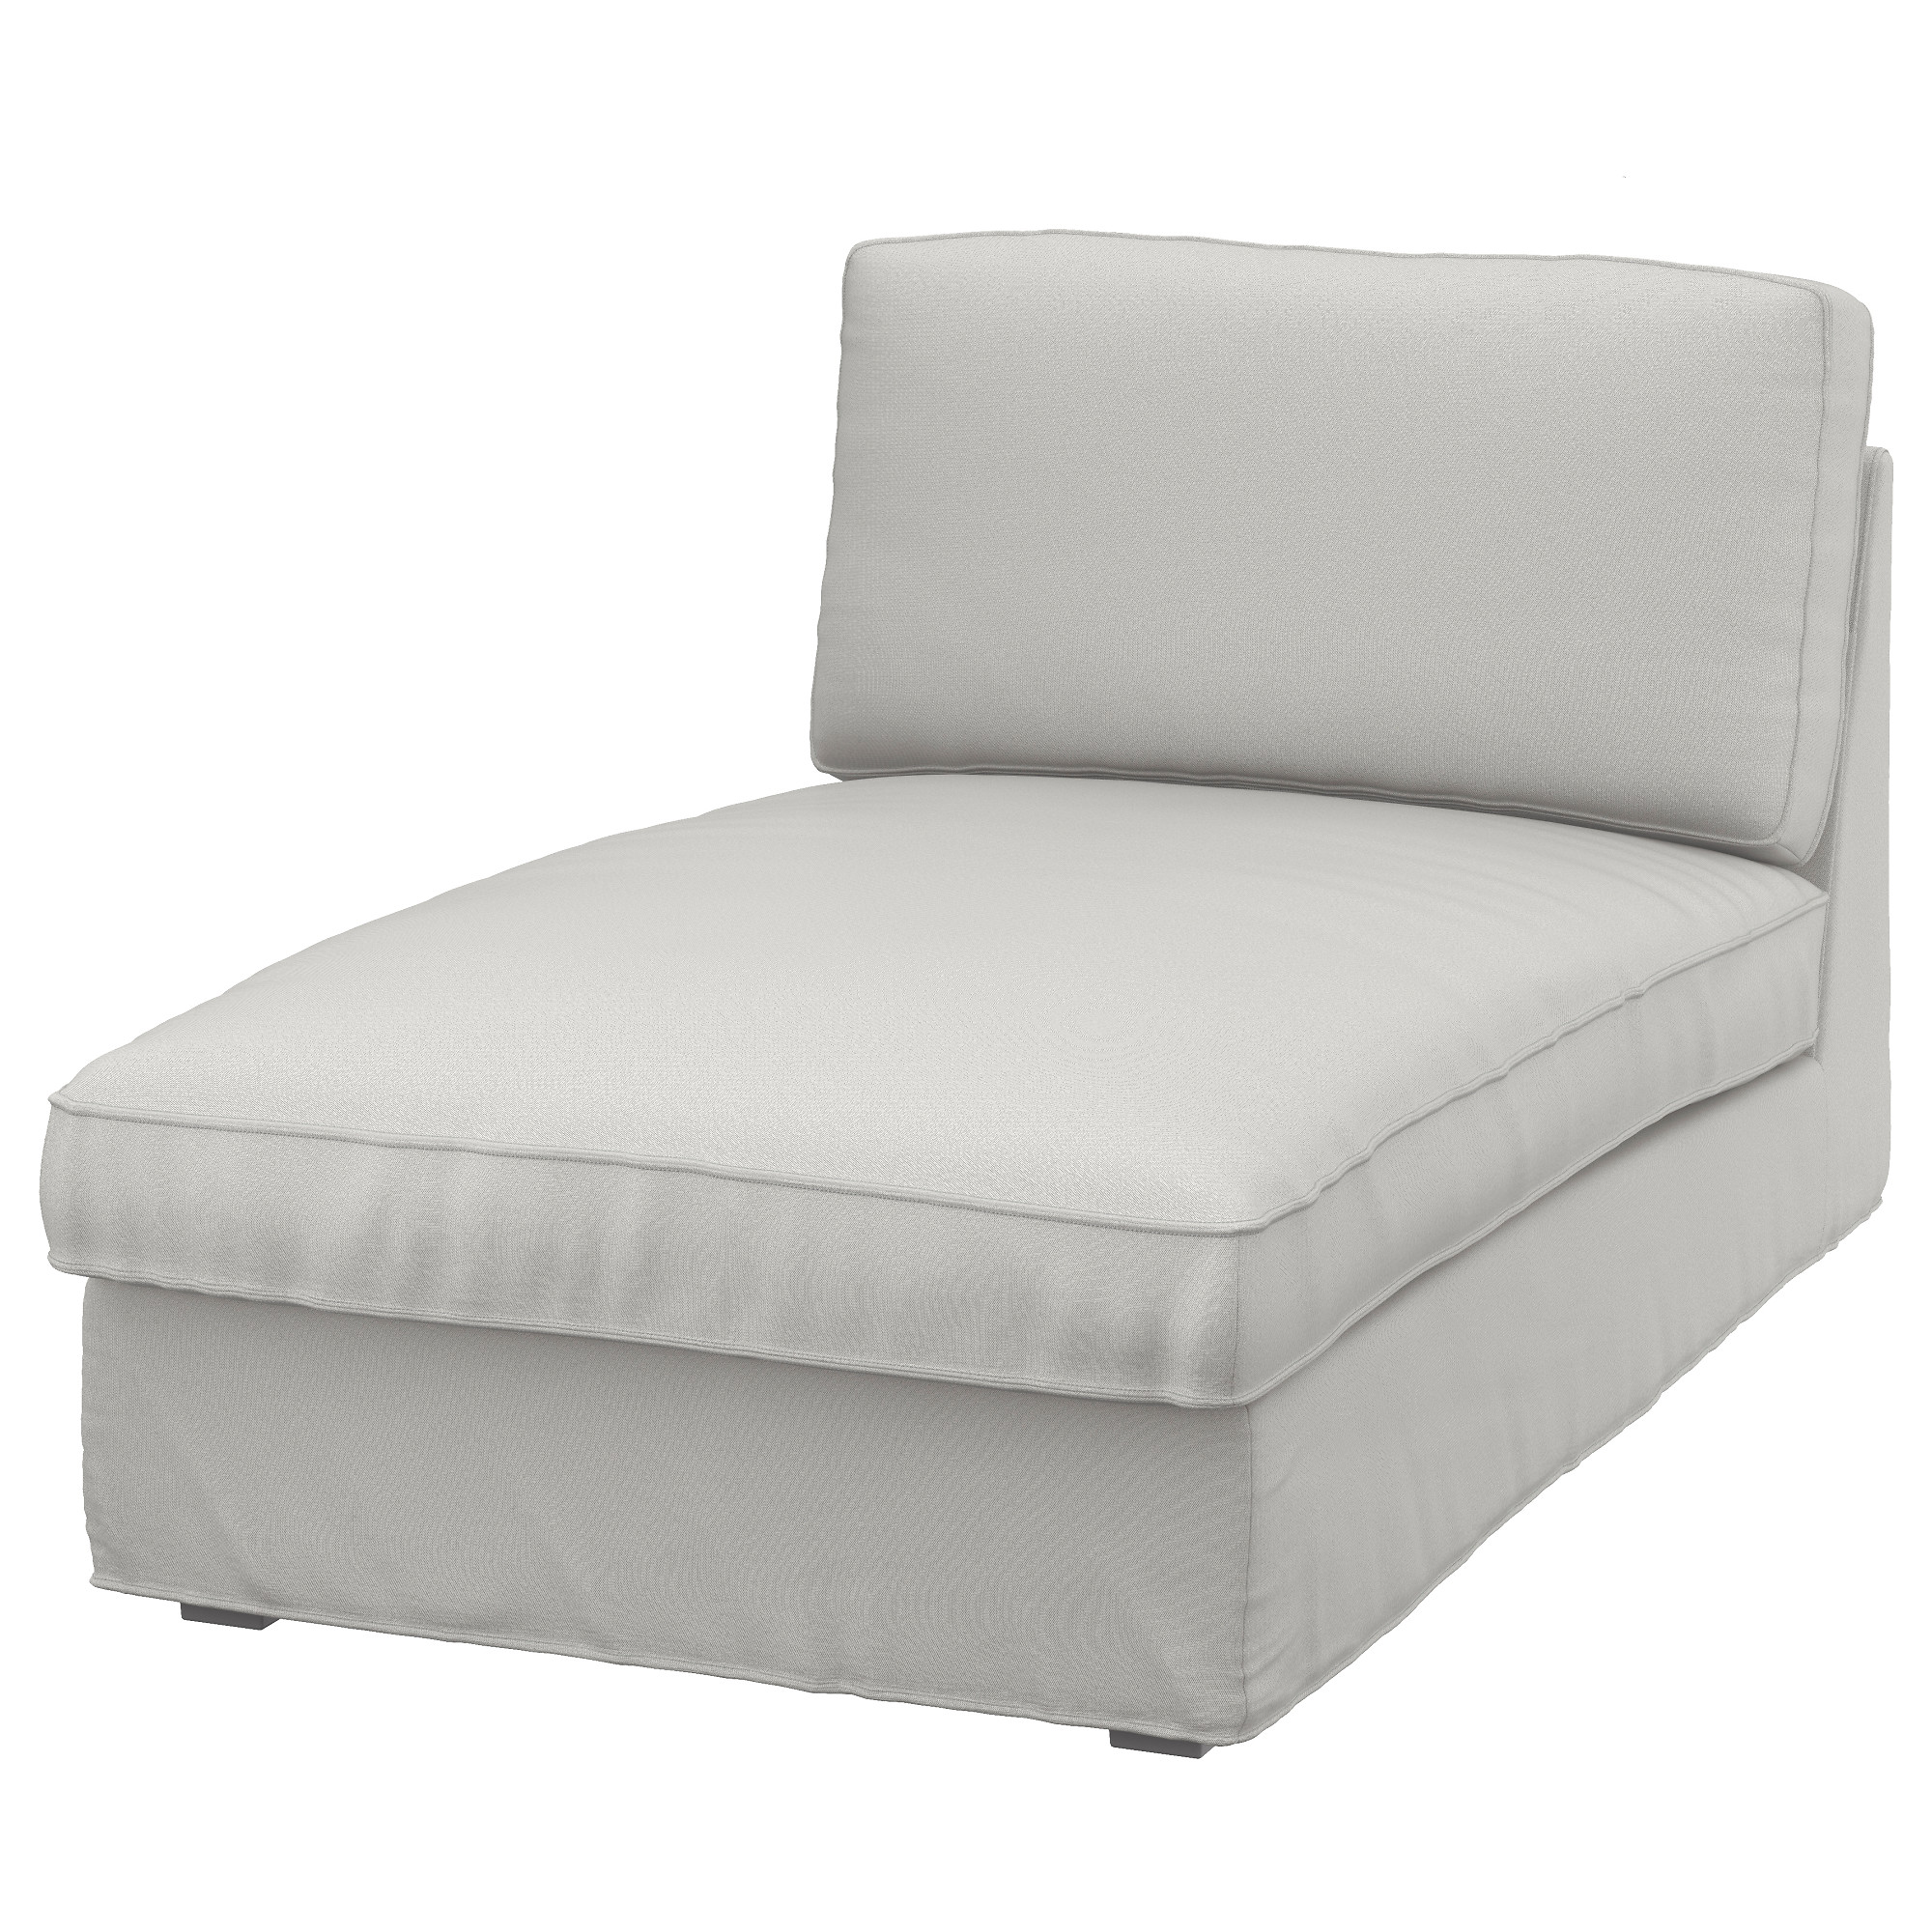 Cover Grey Chaise Longue Light Kivik Ramna For ym0vnNO8w